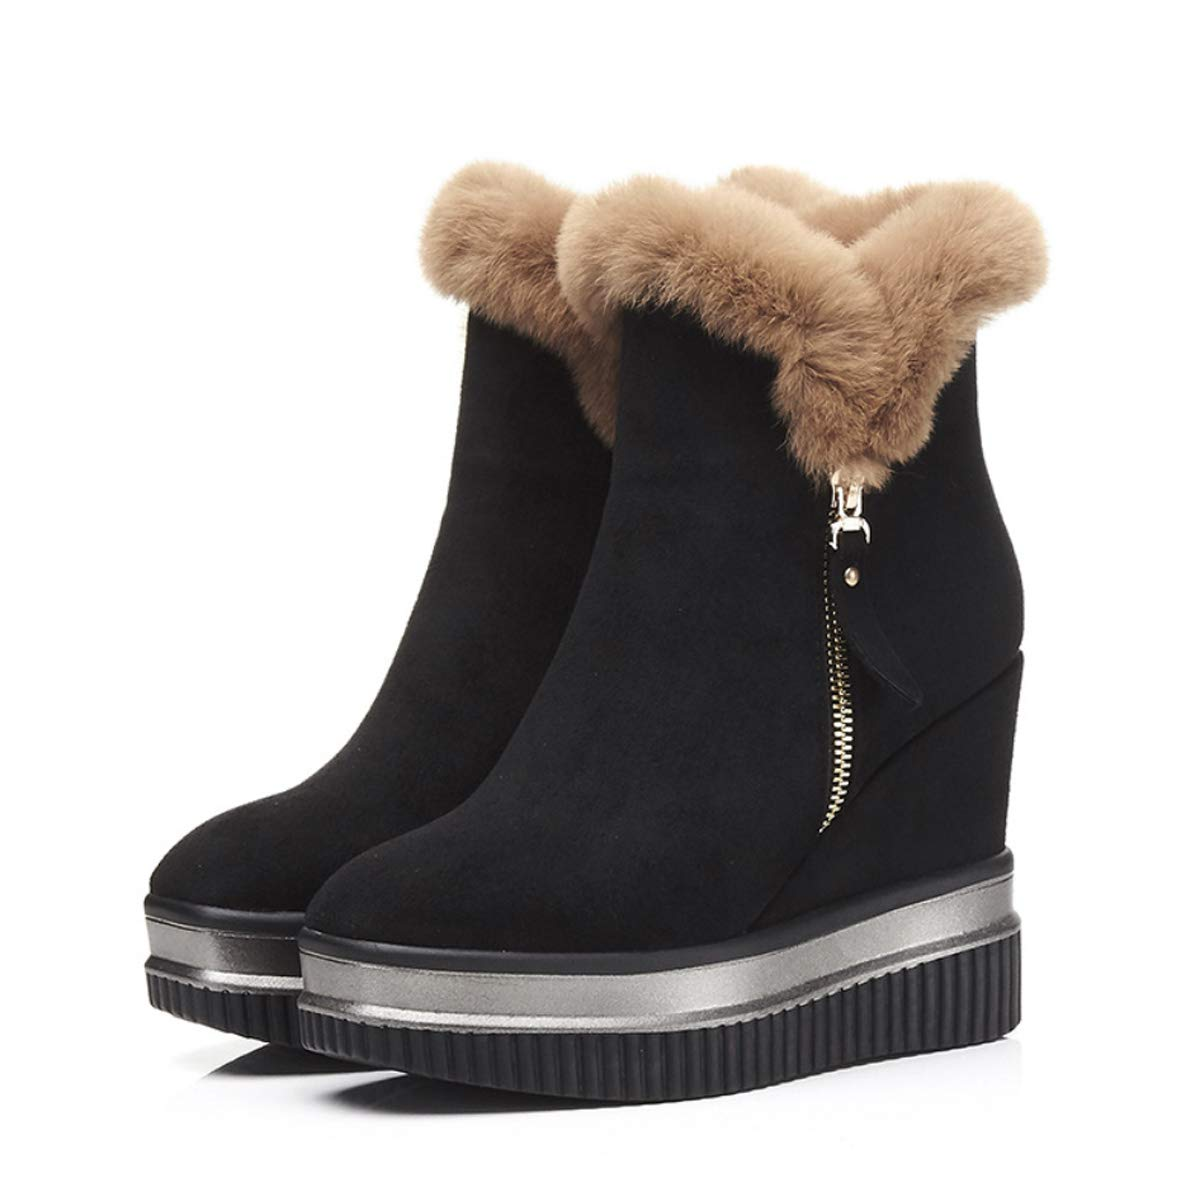 Black Women's shoes Fall & Winter Ankle Boots Wedge Heel Boots Round Toe Super High Heel Boots